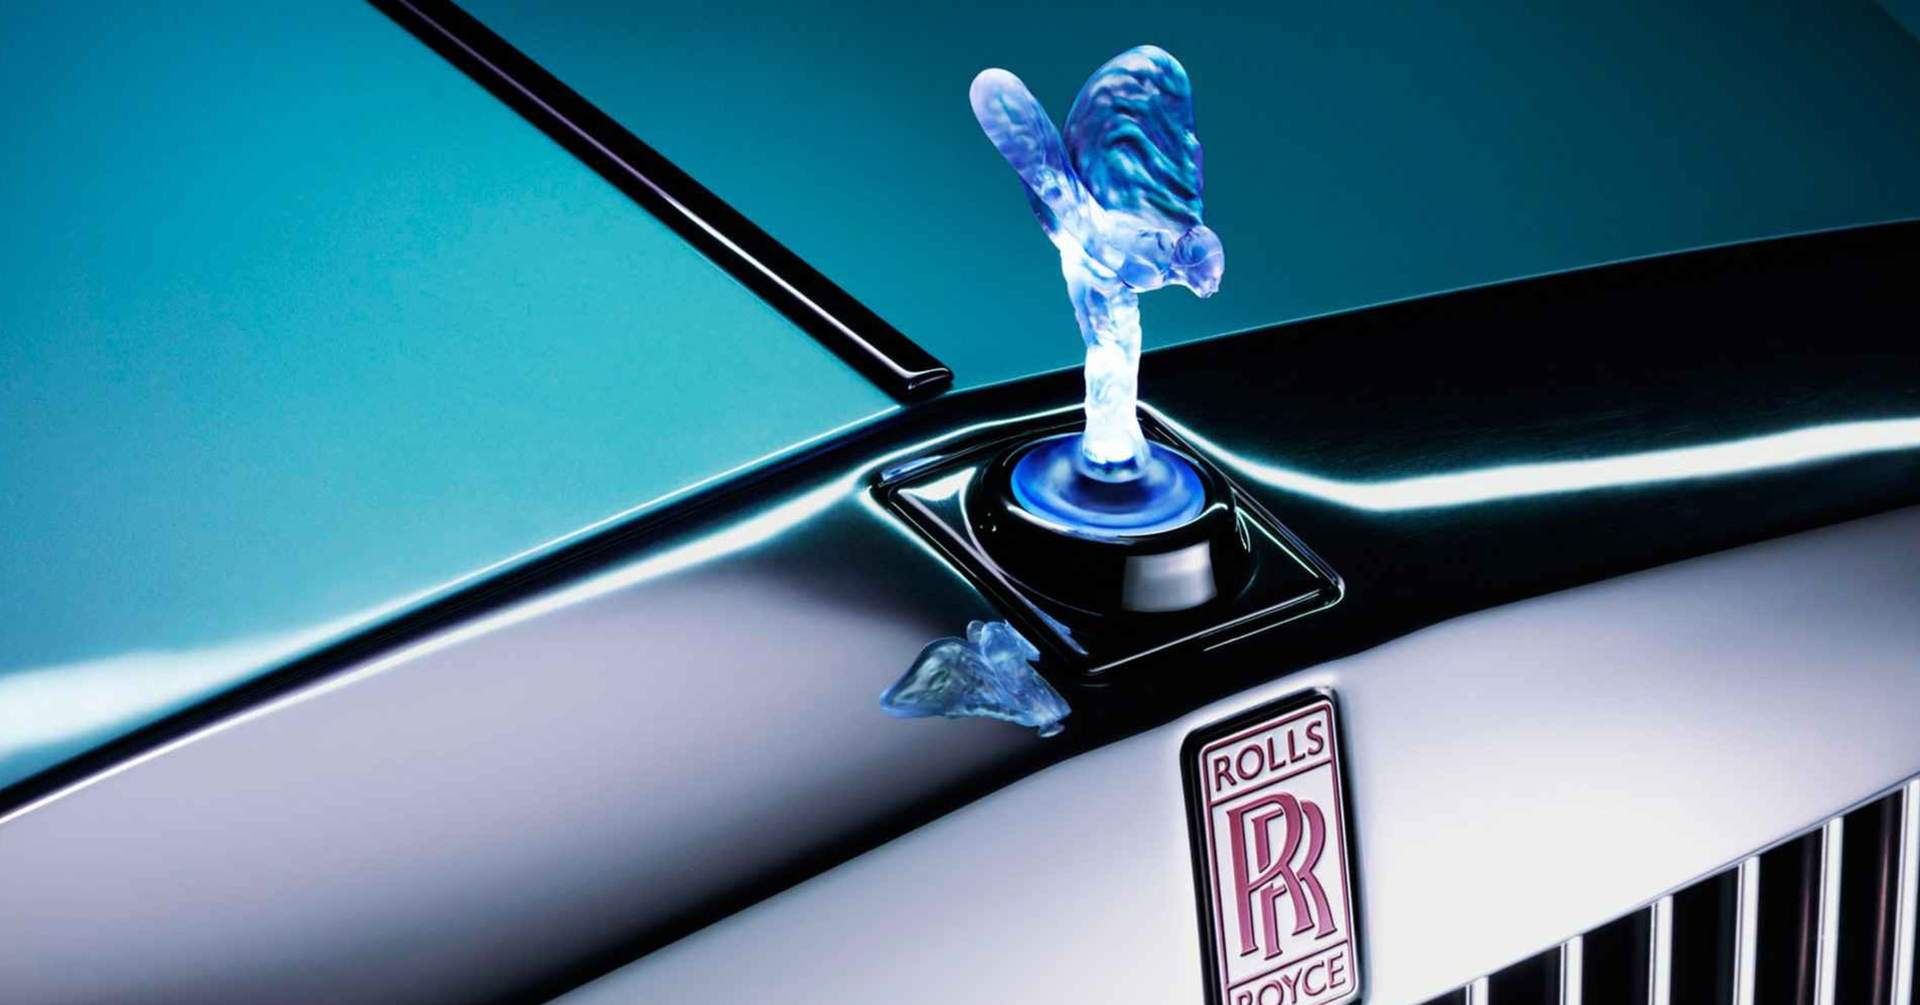 Close-up of a bespoke Spirit of Ecstasy and Rolls-Royce motor cars logo on a prototype electric vehicle.